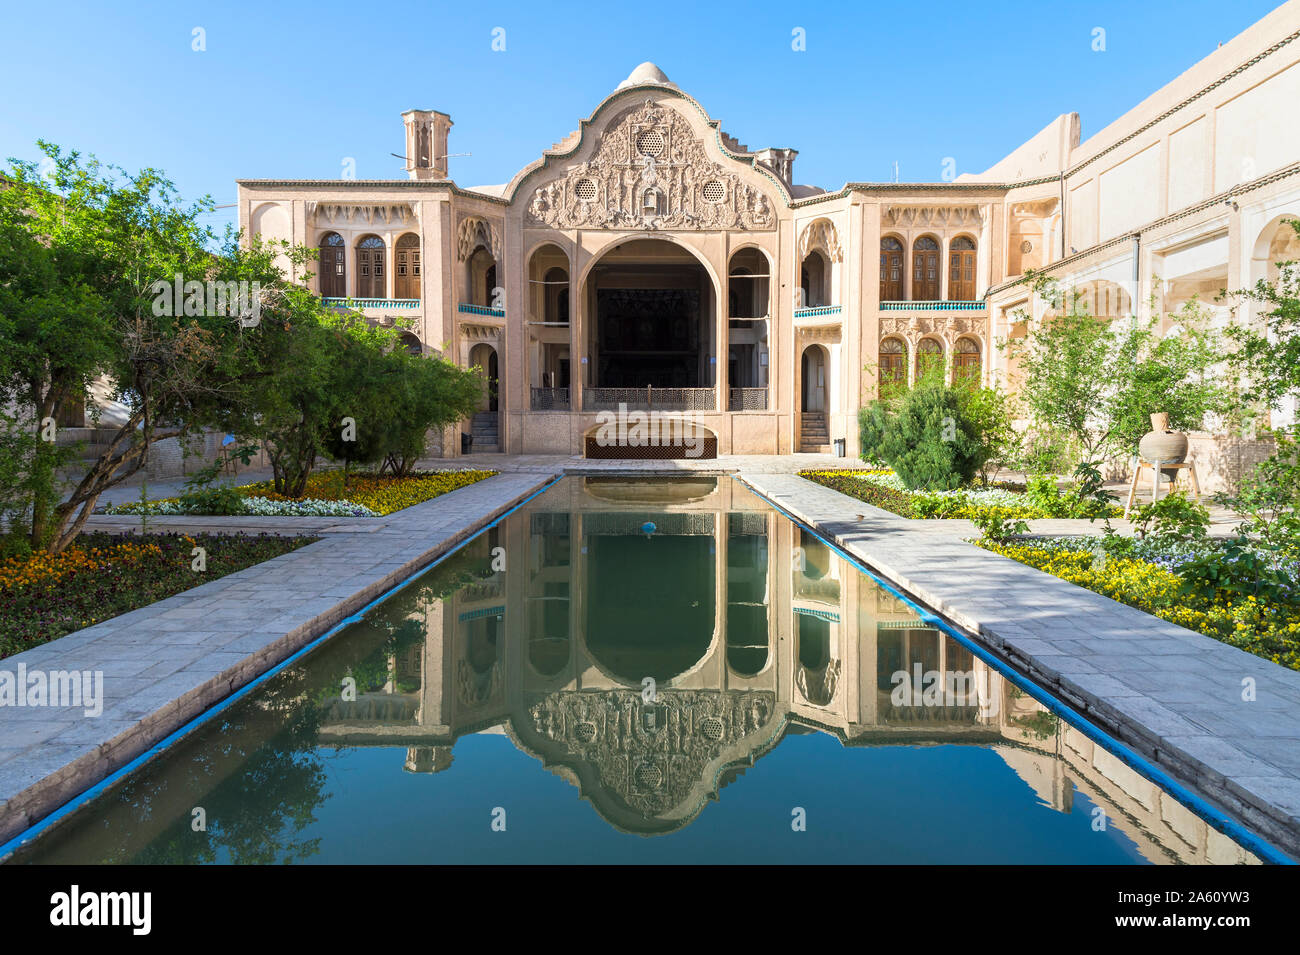 Borujerdi House, Courtyard and pond, Kashan, Isfahan Province, Islamic Republic of Iran, Middle East Stock Photo